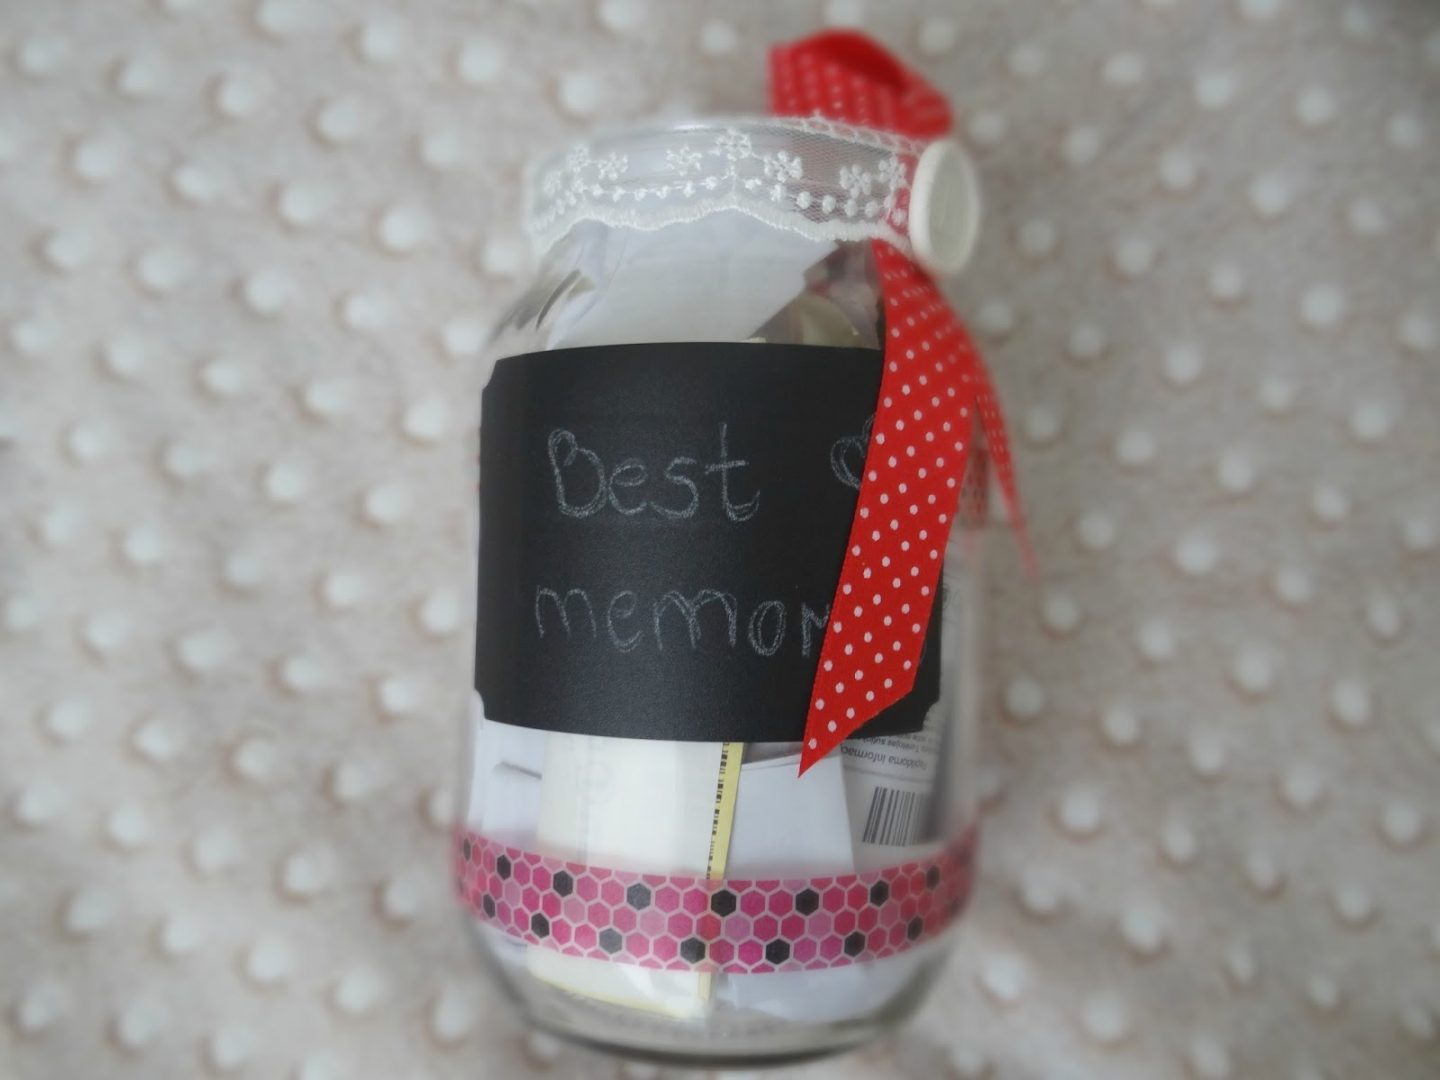 2015 In Reflection | Best of 2015 Jar